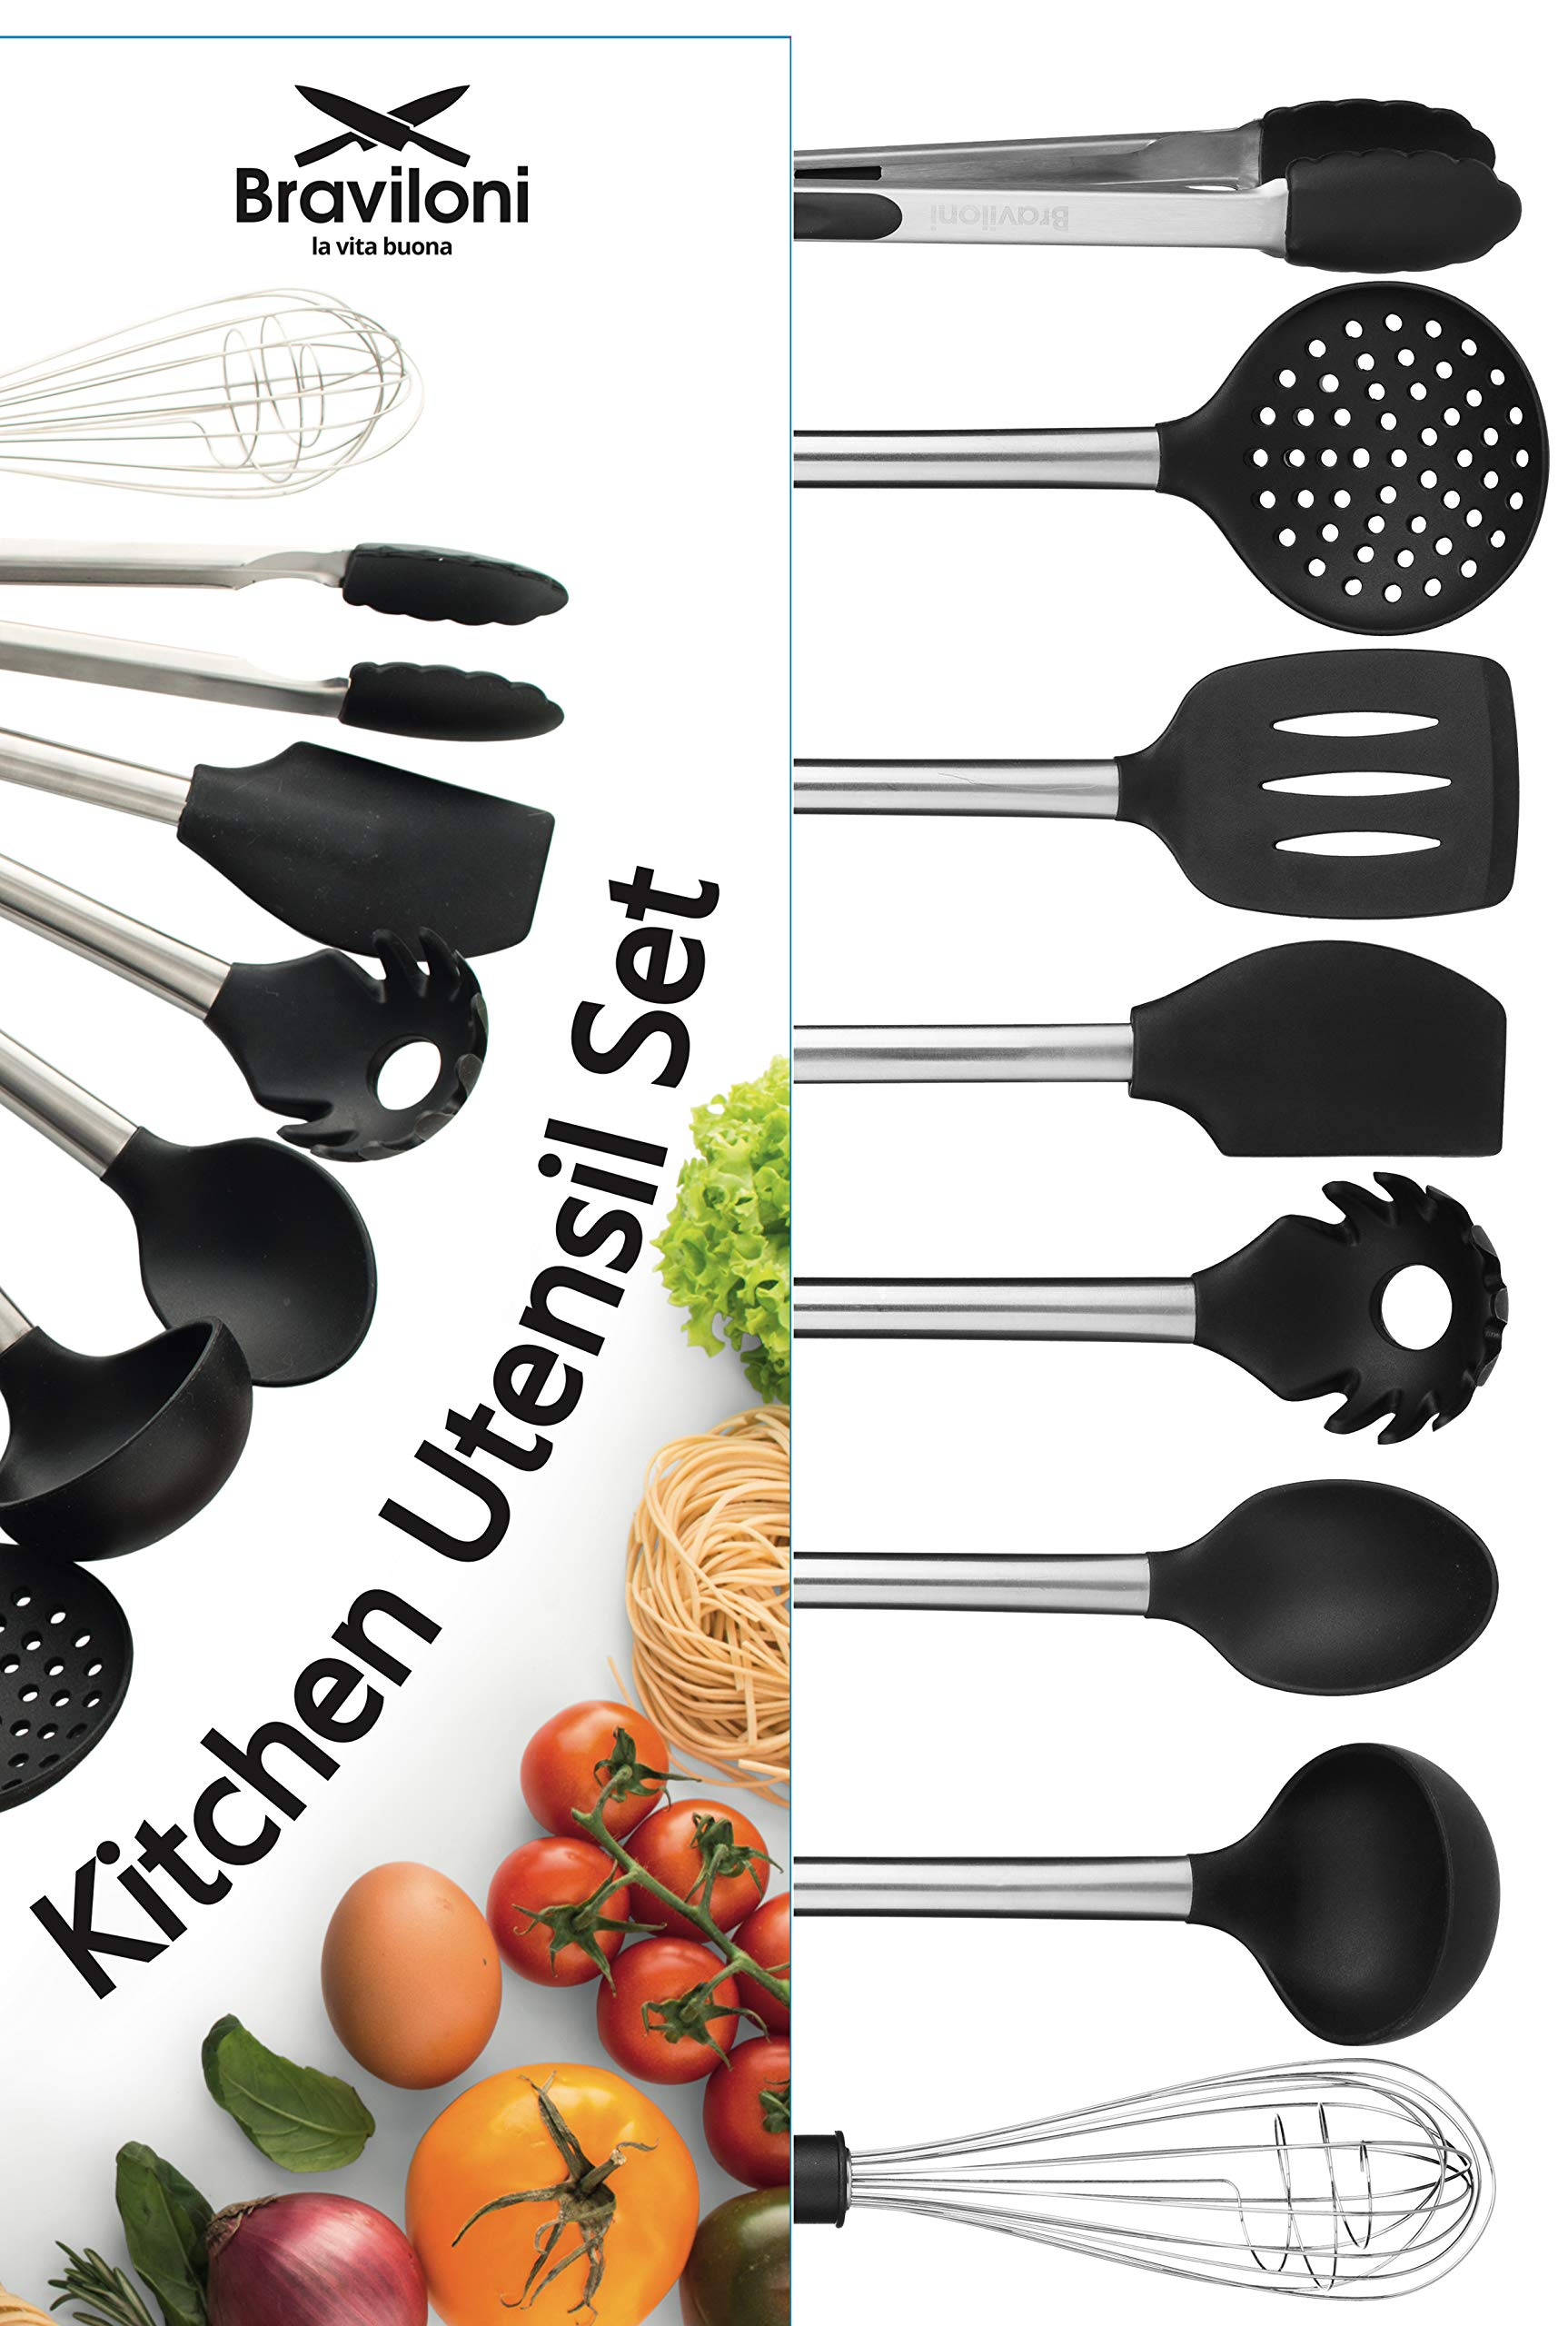 Kitchen Utensil Set - 8pcs Non-Stick Cooking Utensils & Spatulas - Silicone & Stainless Steel - Safe for Pots & Pans - Serving Tongs, Spoon, Spatula Tools, Pasta Server, Ladle, Strainer, Whisk